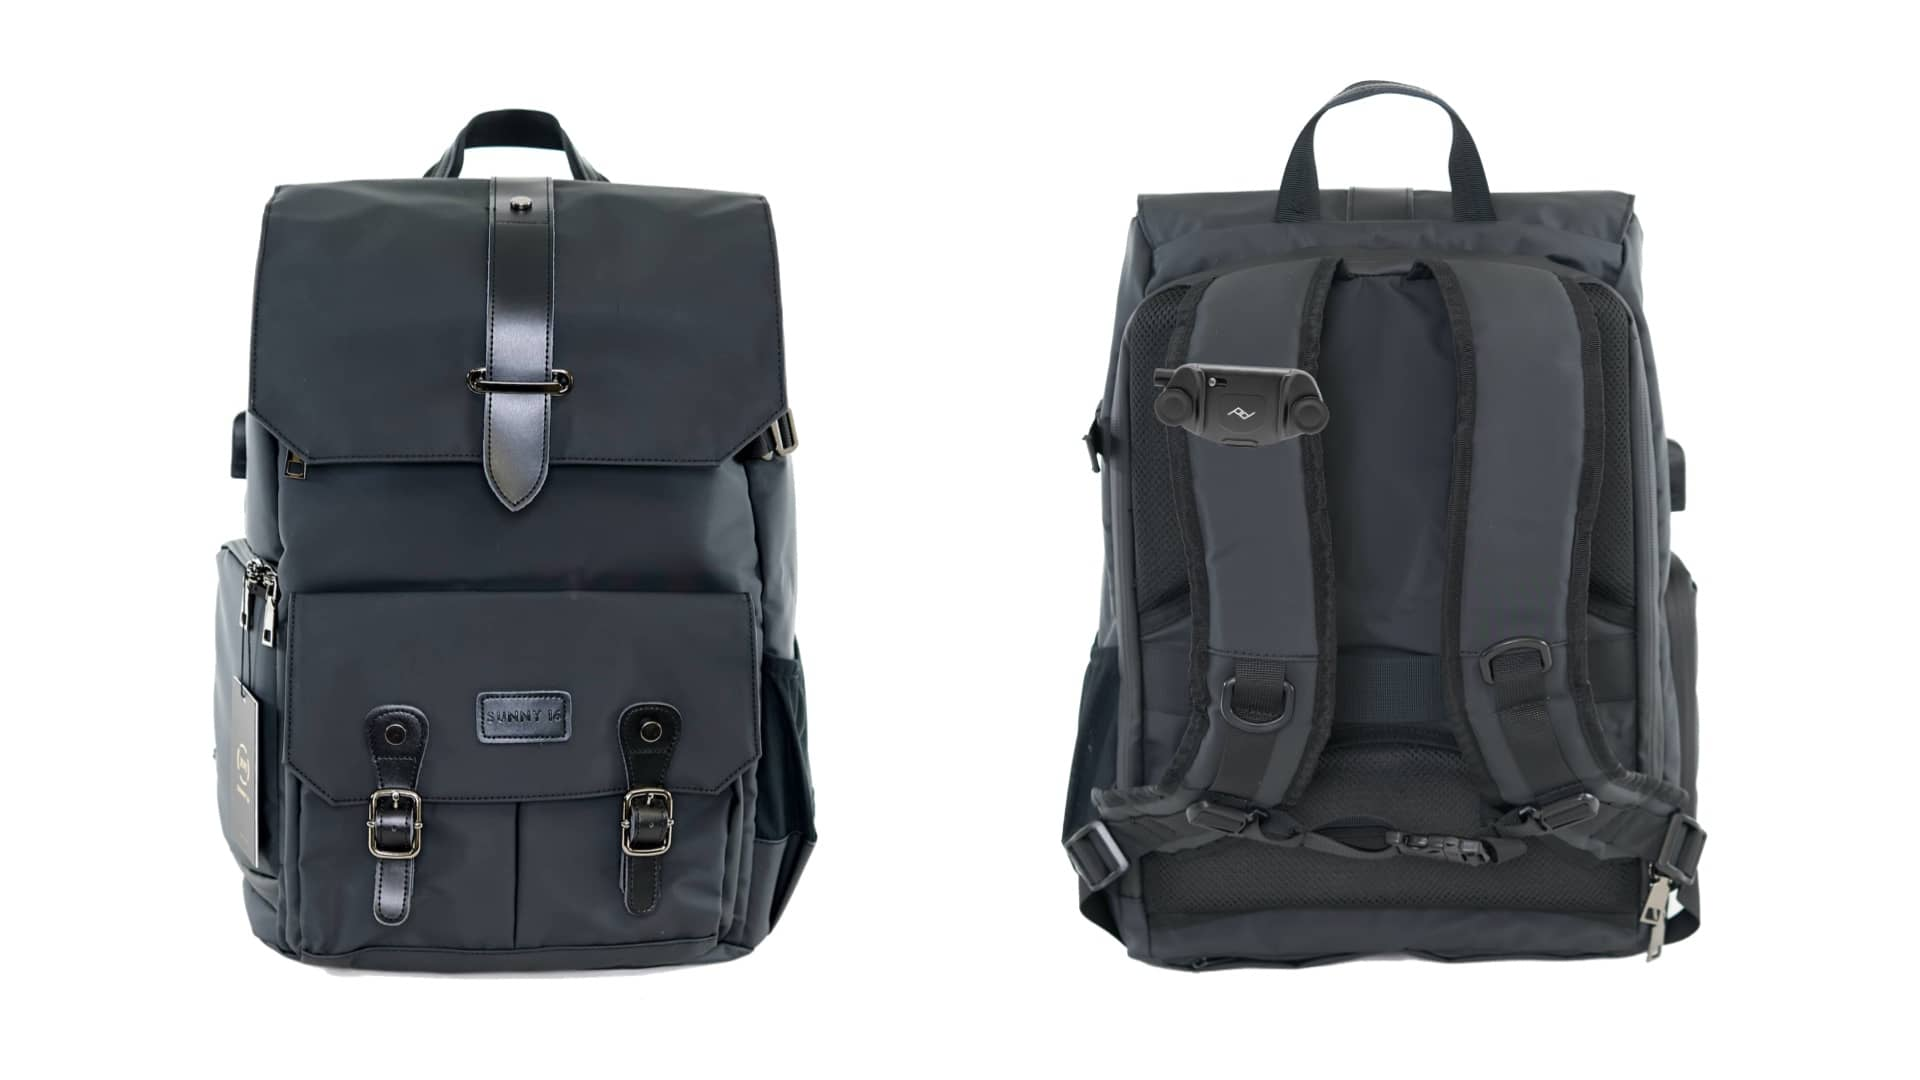 Best Sports Photography Camera Backpack - Sunny 16